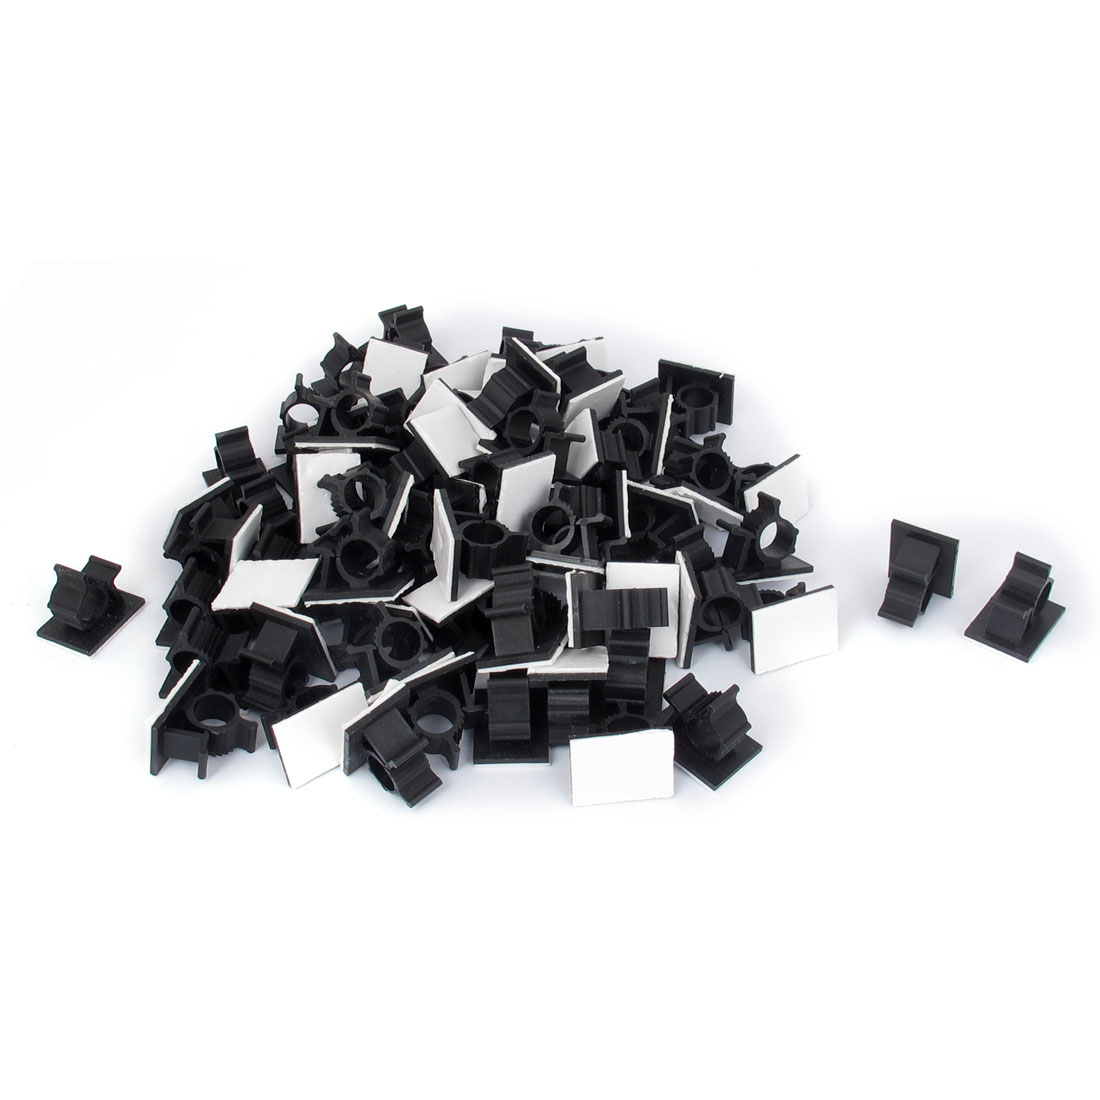 100 Pcs Black Plastic Self Adhesive Cable Cord Tie Mount Base Holder 25mm x 20mm